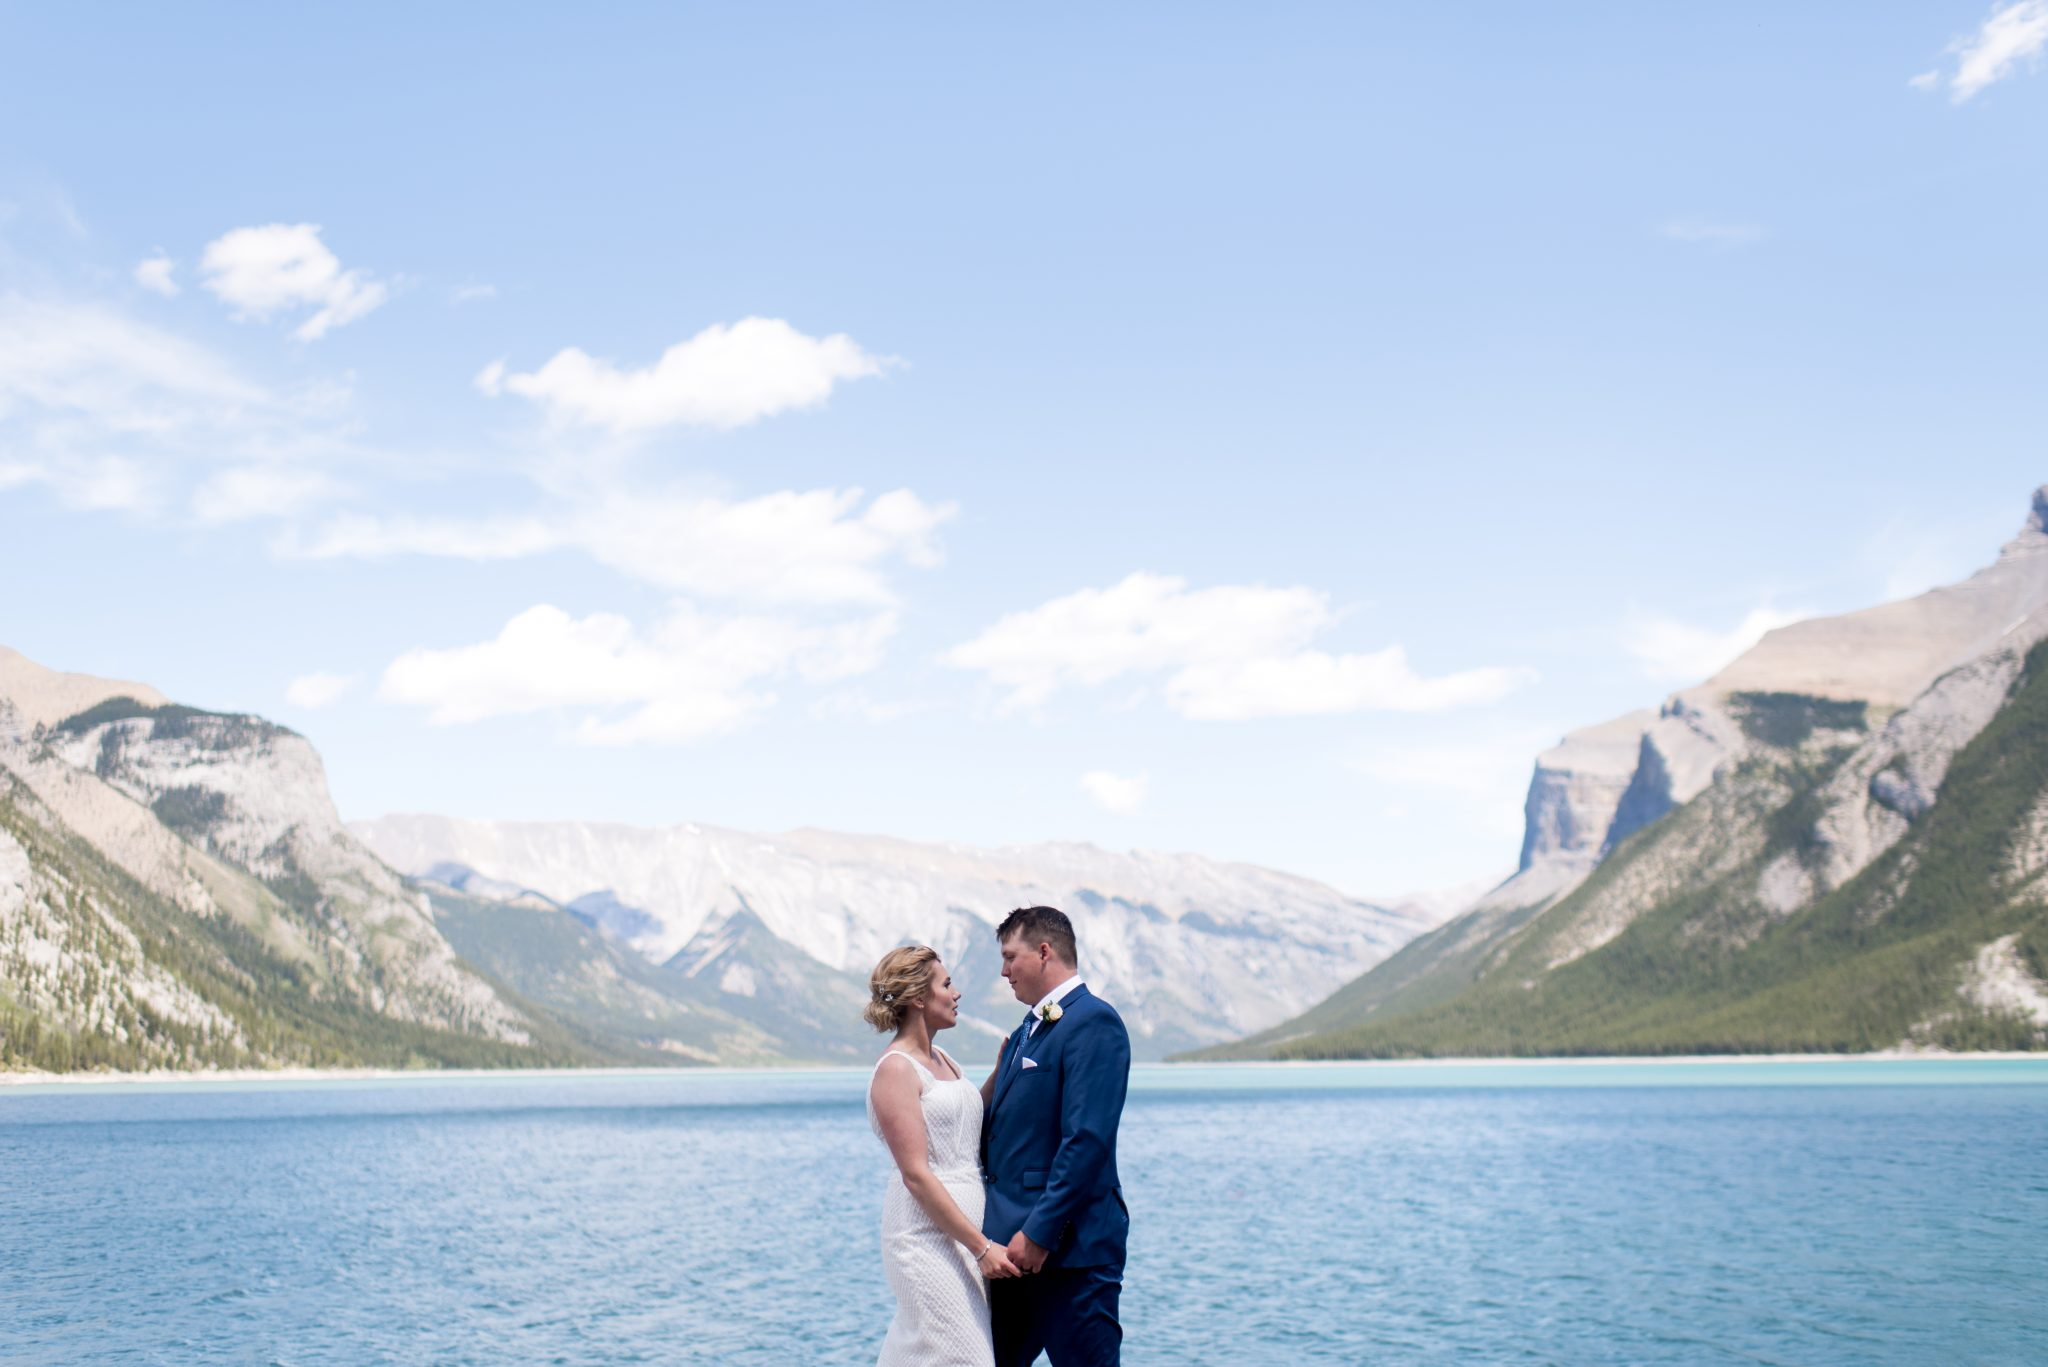 Bride and groom stand on the shore of Lake Minnewanka on their wedding day